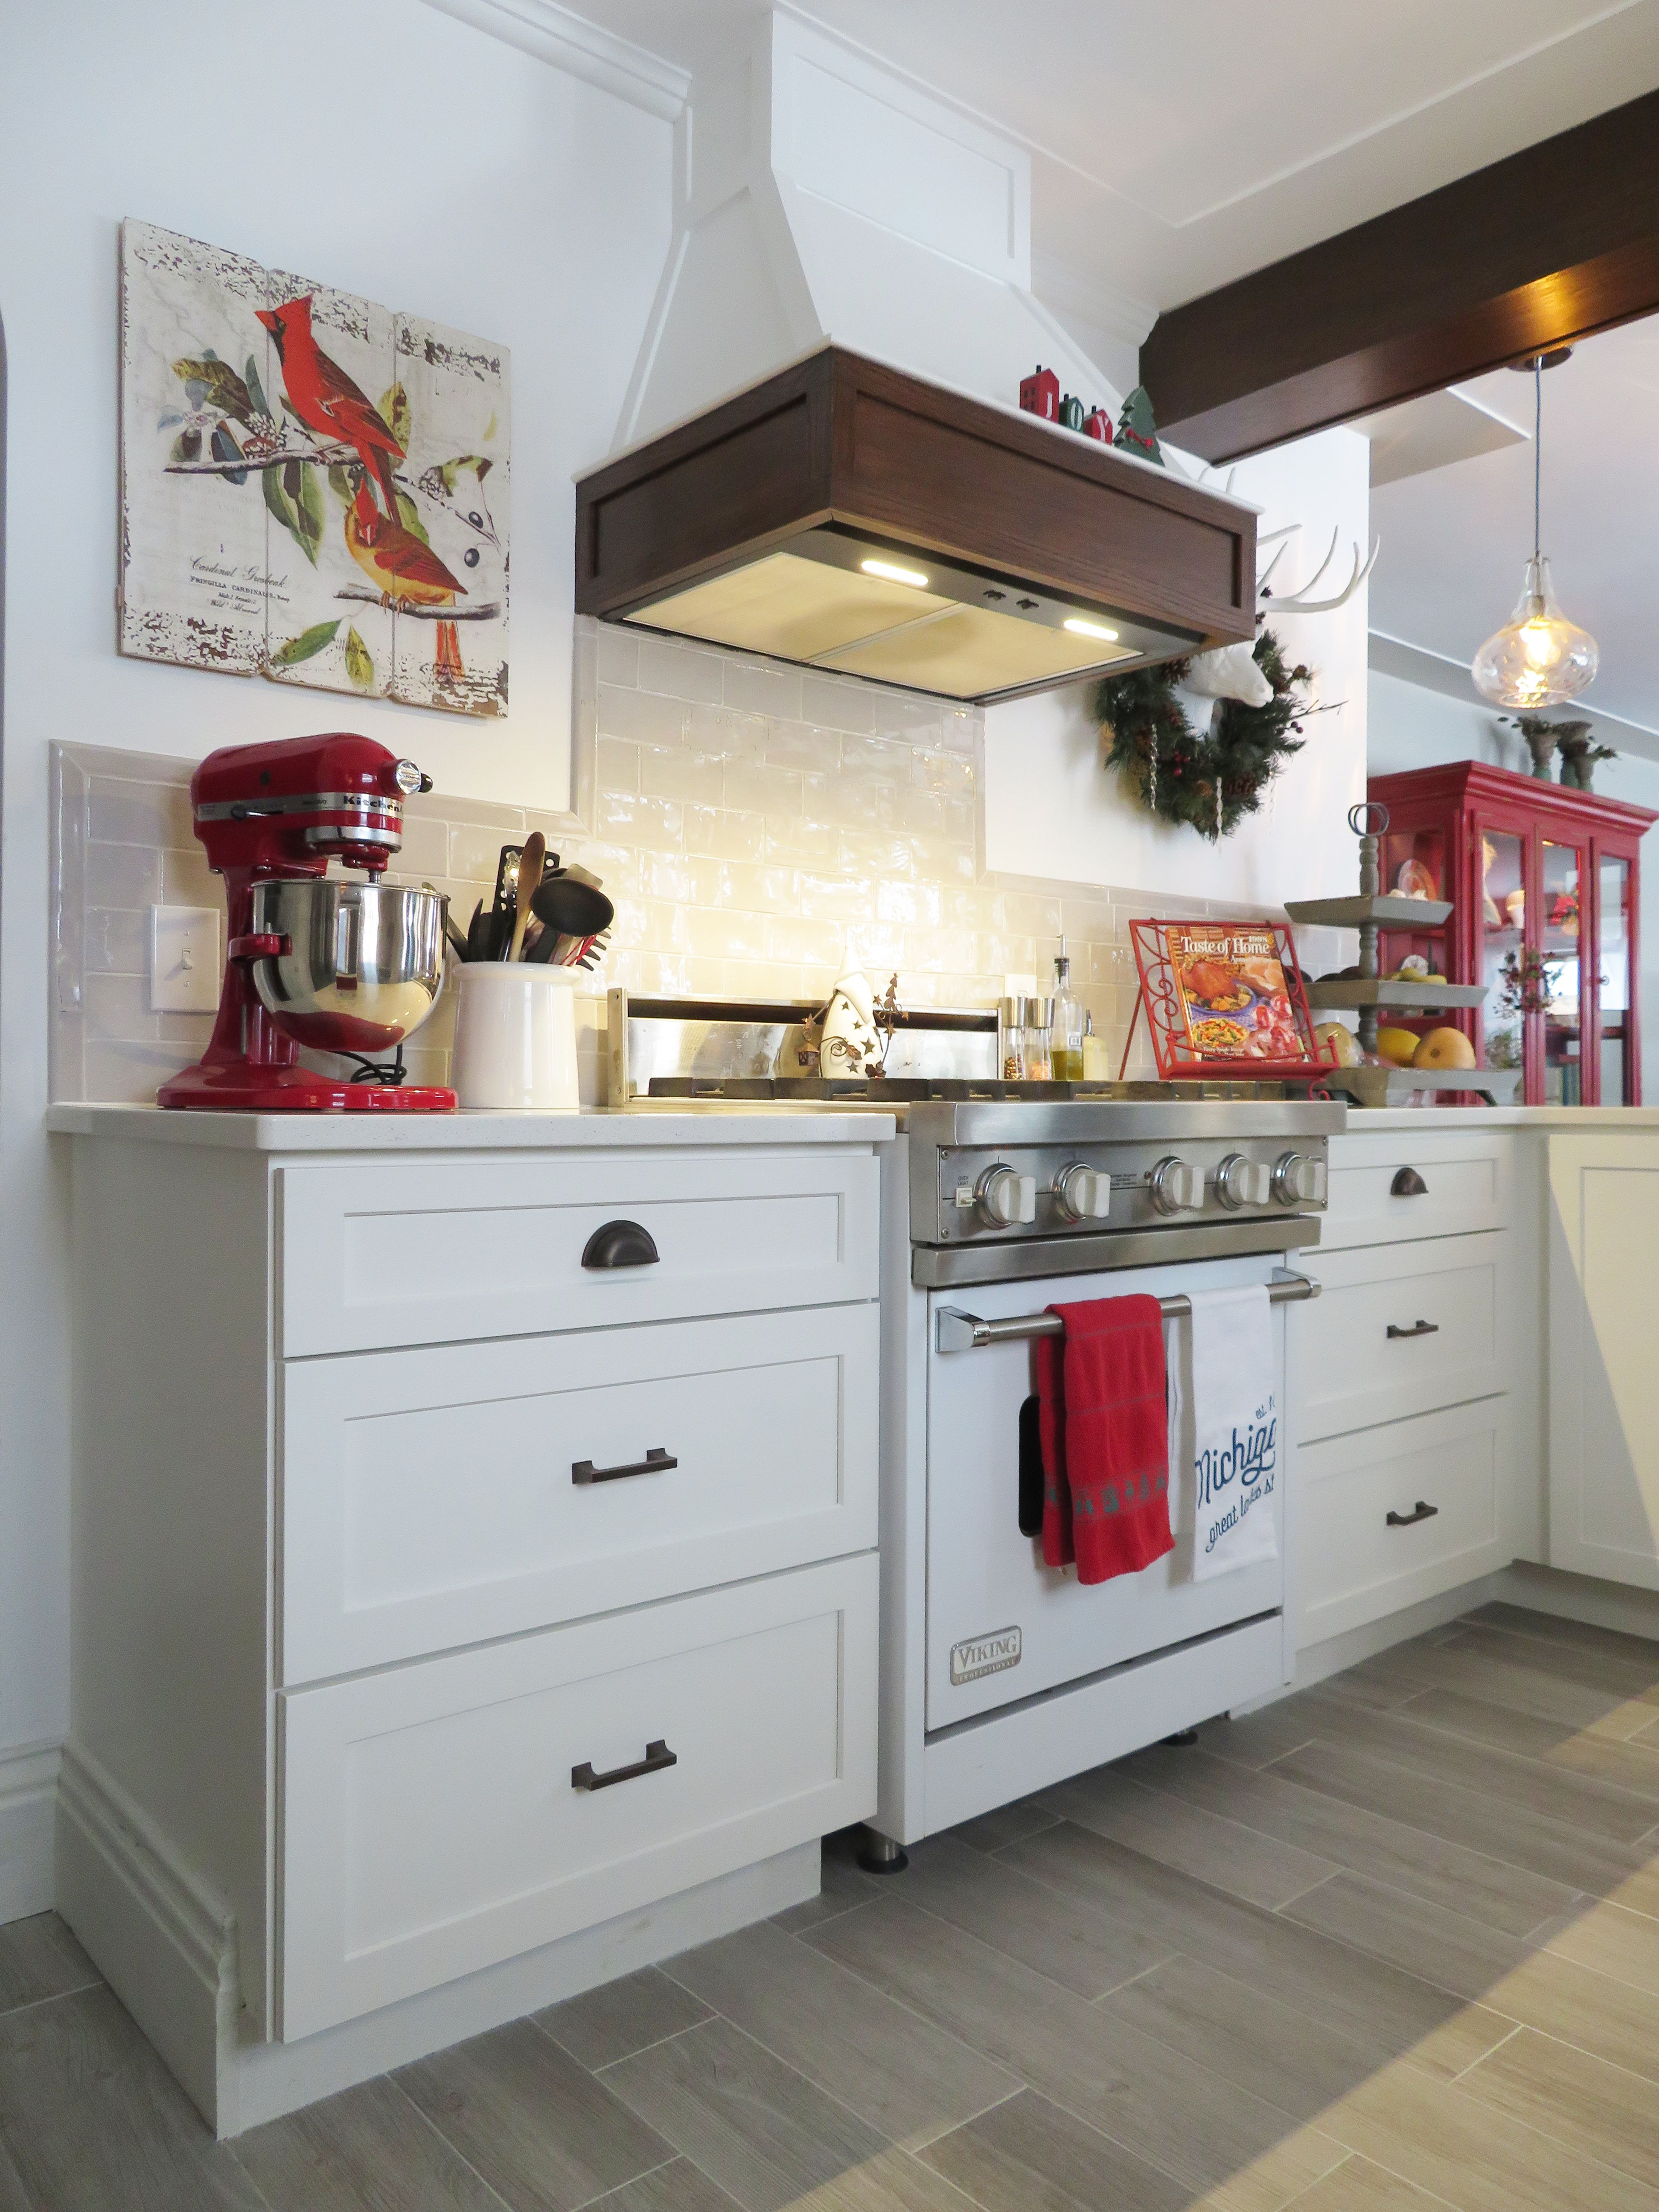 Dura Supreme Cabinetry in Door Style Hudson Painted Maple White ...